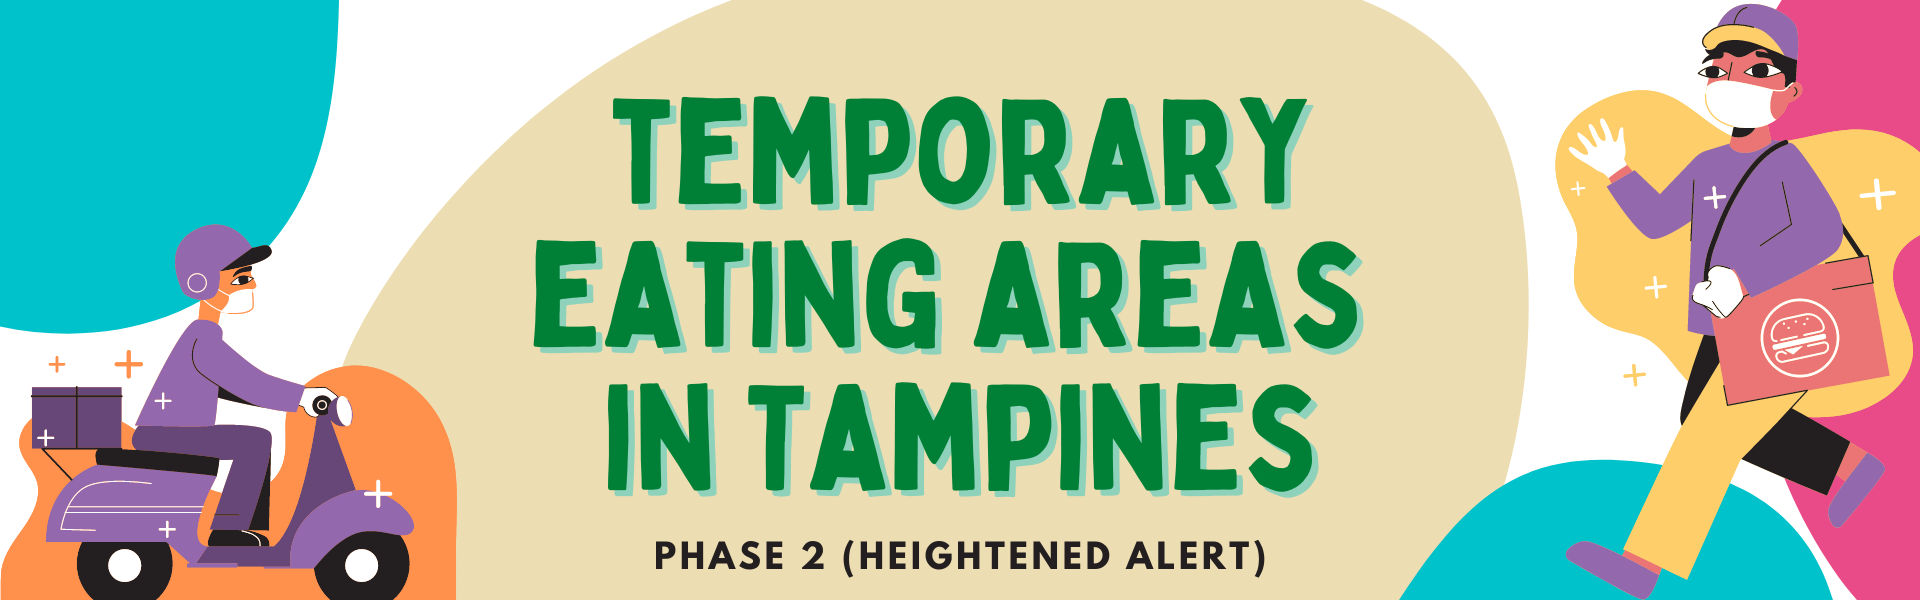 Temporary Eating Areas in Tampines